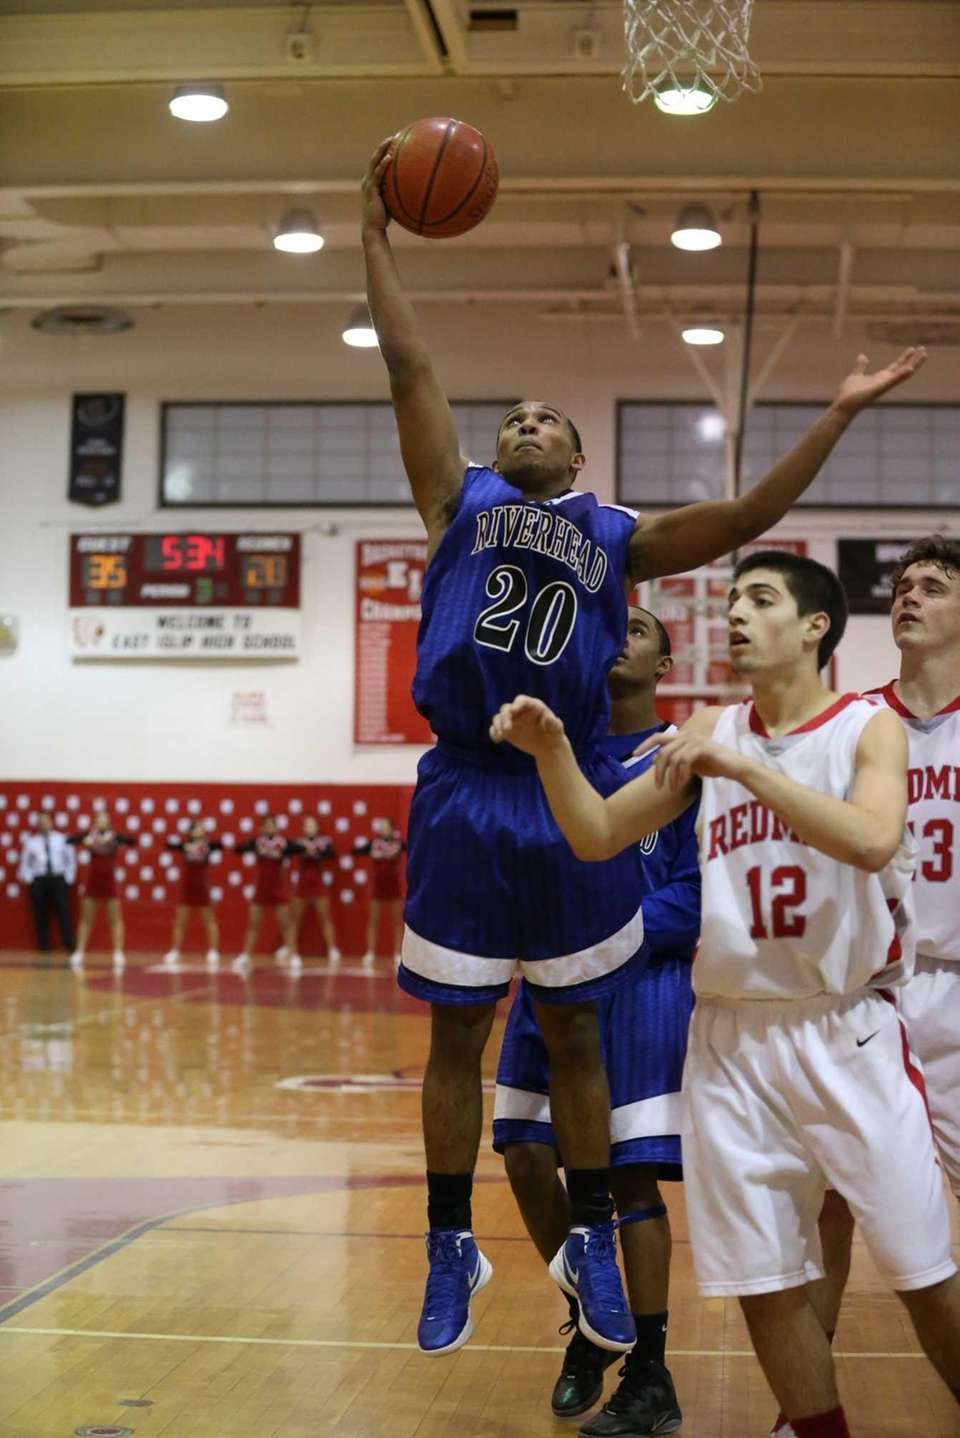 Riverhead's Jeremiah Cheatom #20 gets the rebound over